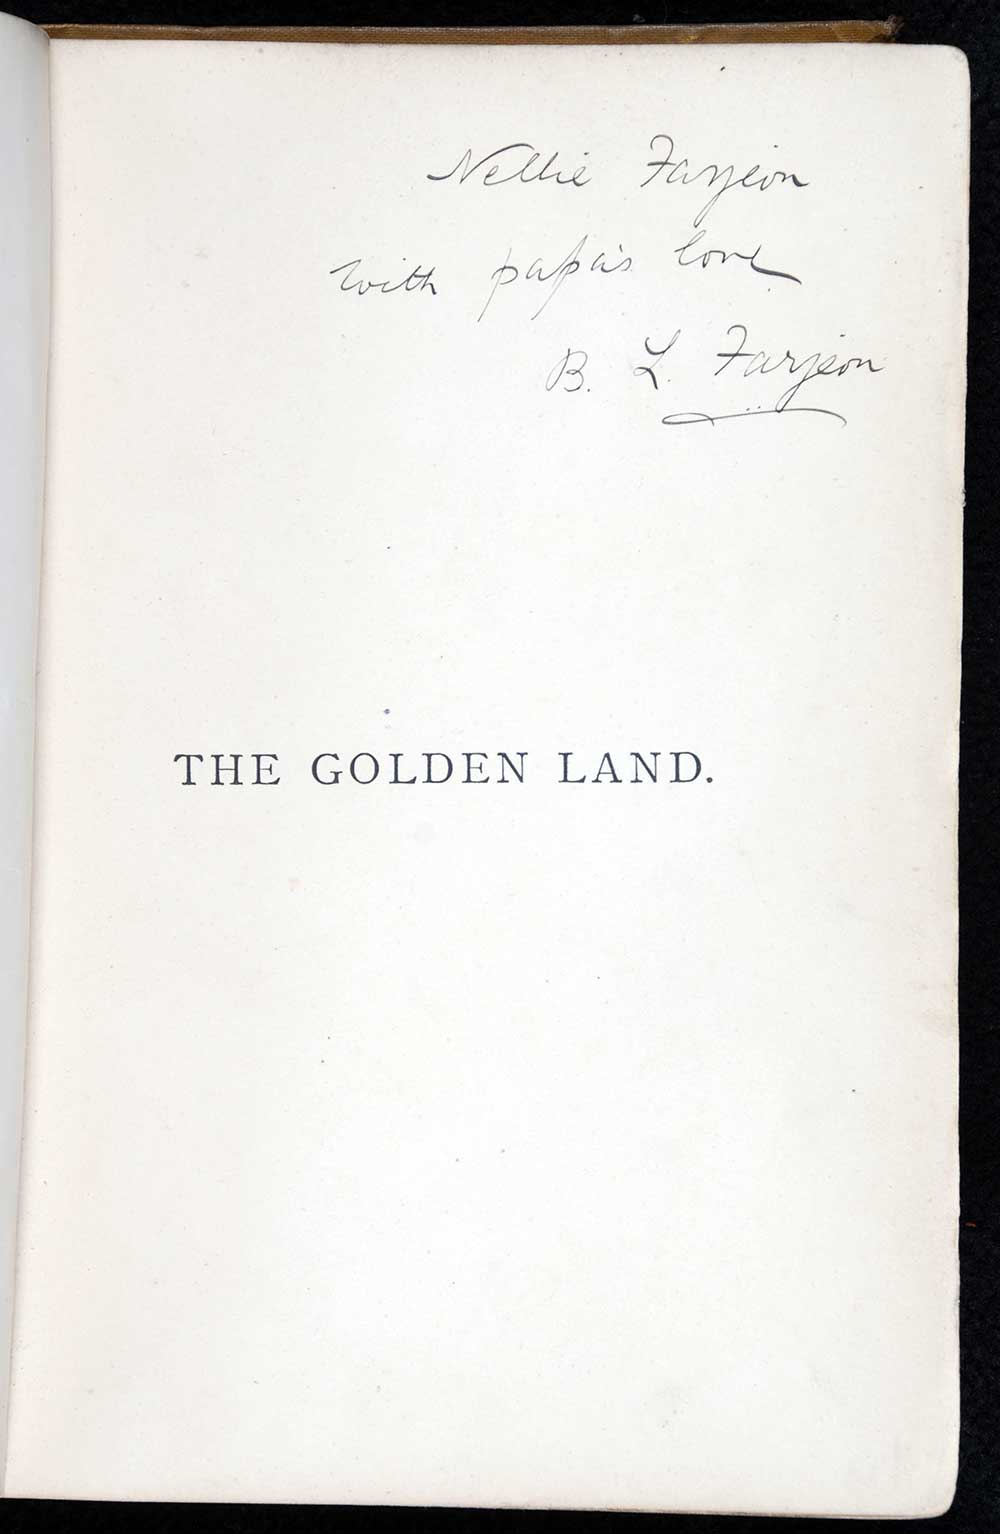 B.L. Farjeon. <em>The golden land, or, Links from shore to shore</em>. London: Ward, Lock & Co., 1886.